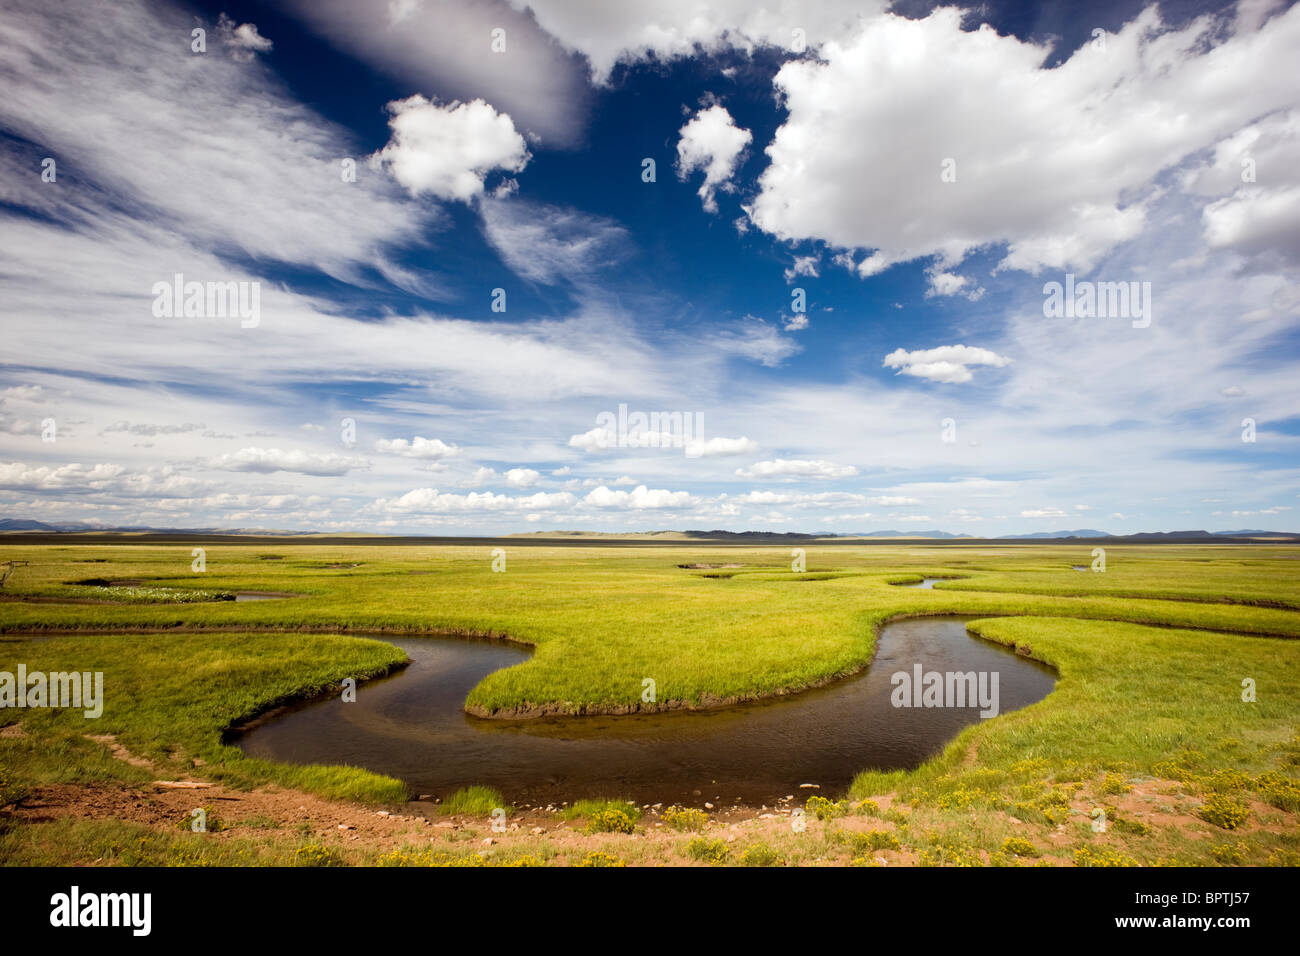 View east of the South Platte River, Park County, Colorado, USA - Stock Image